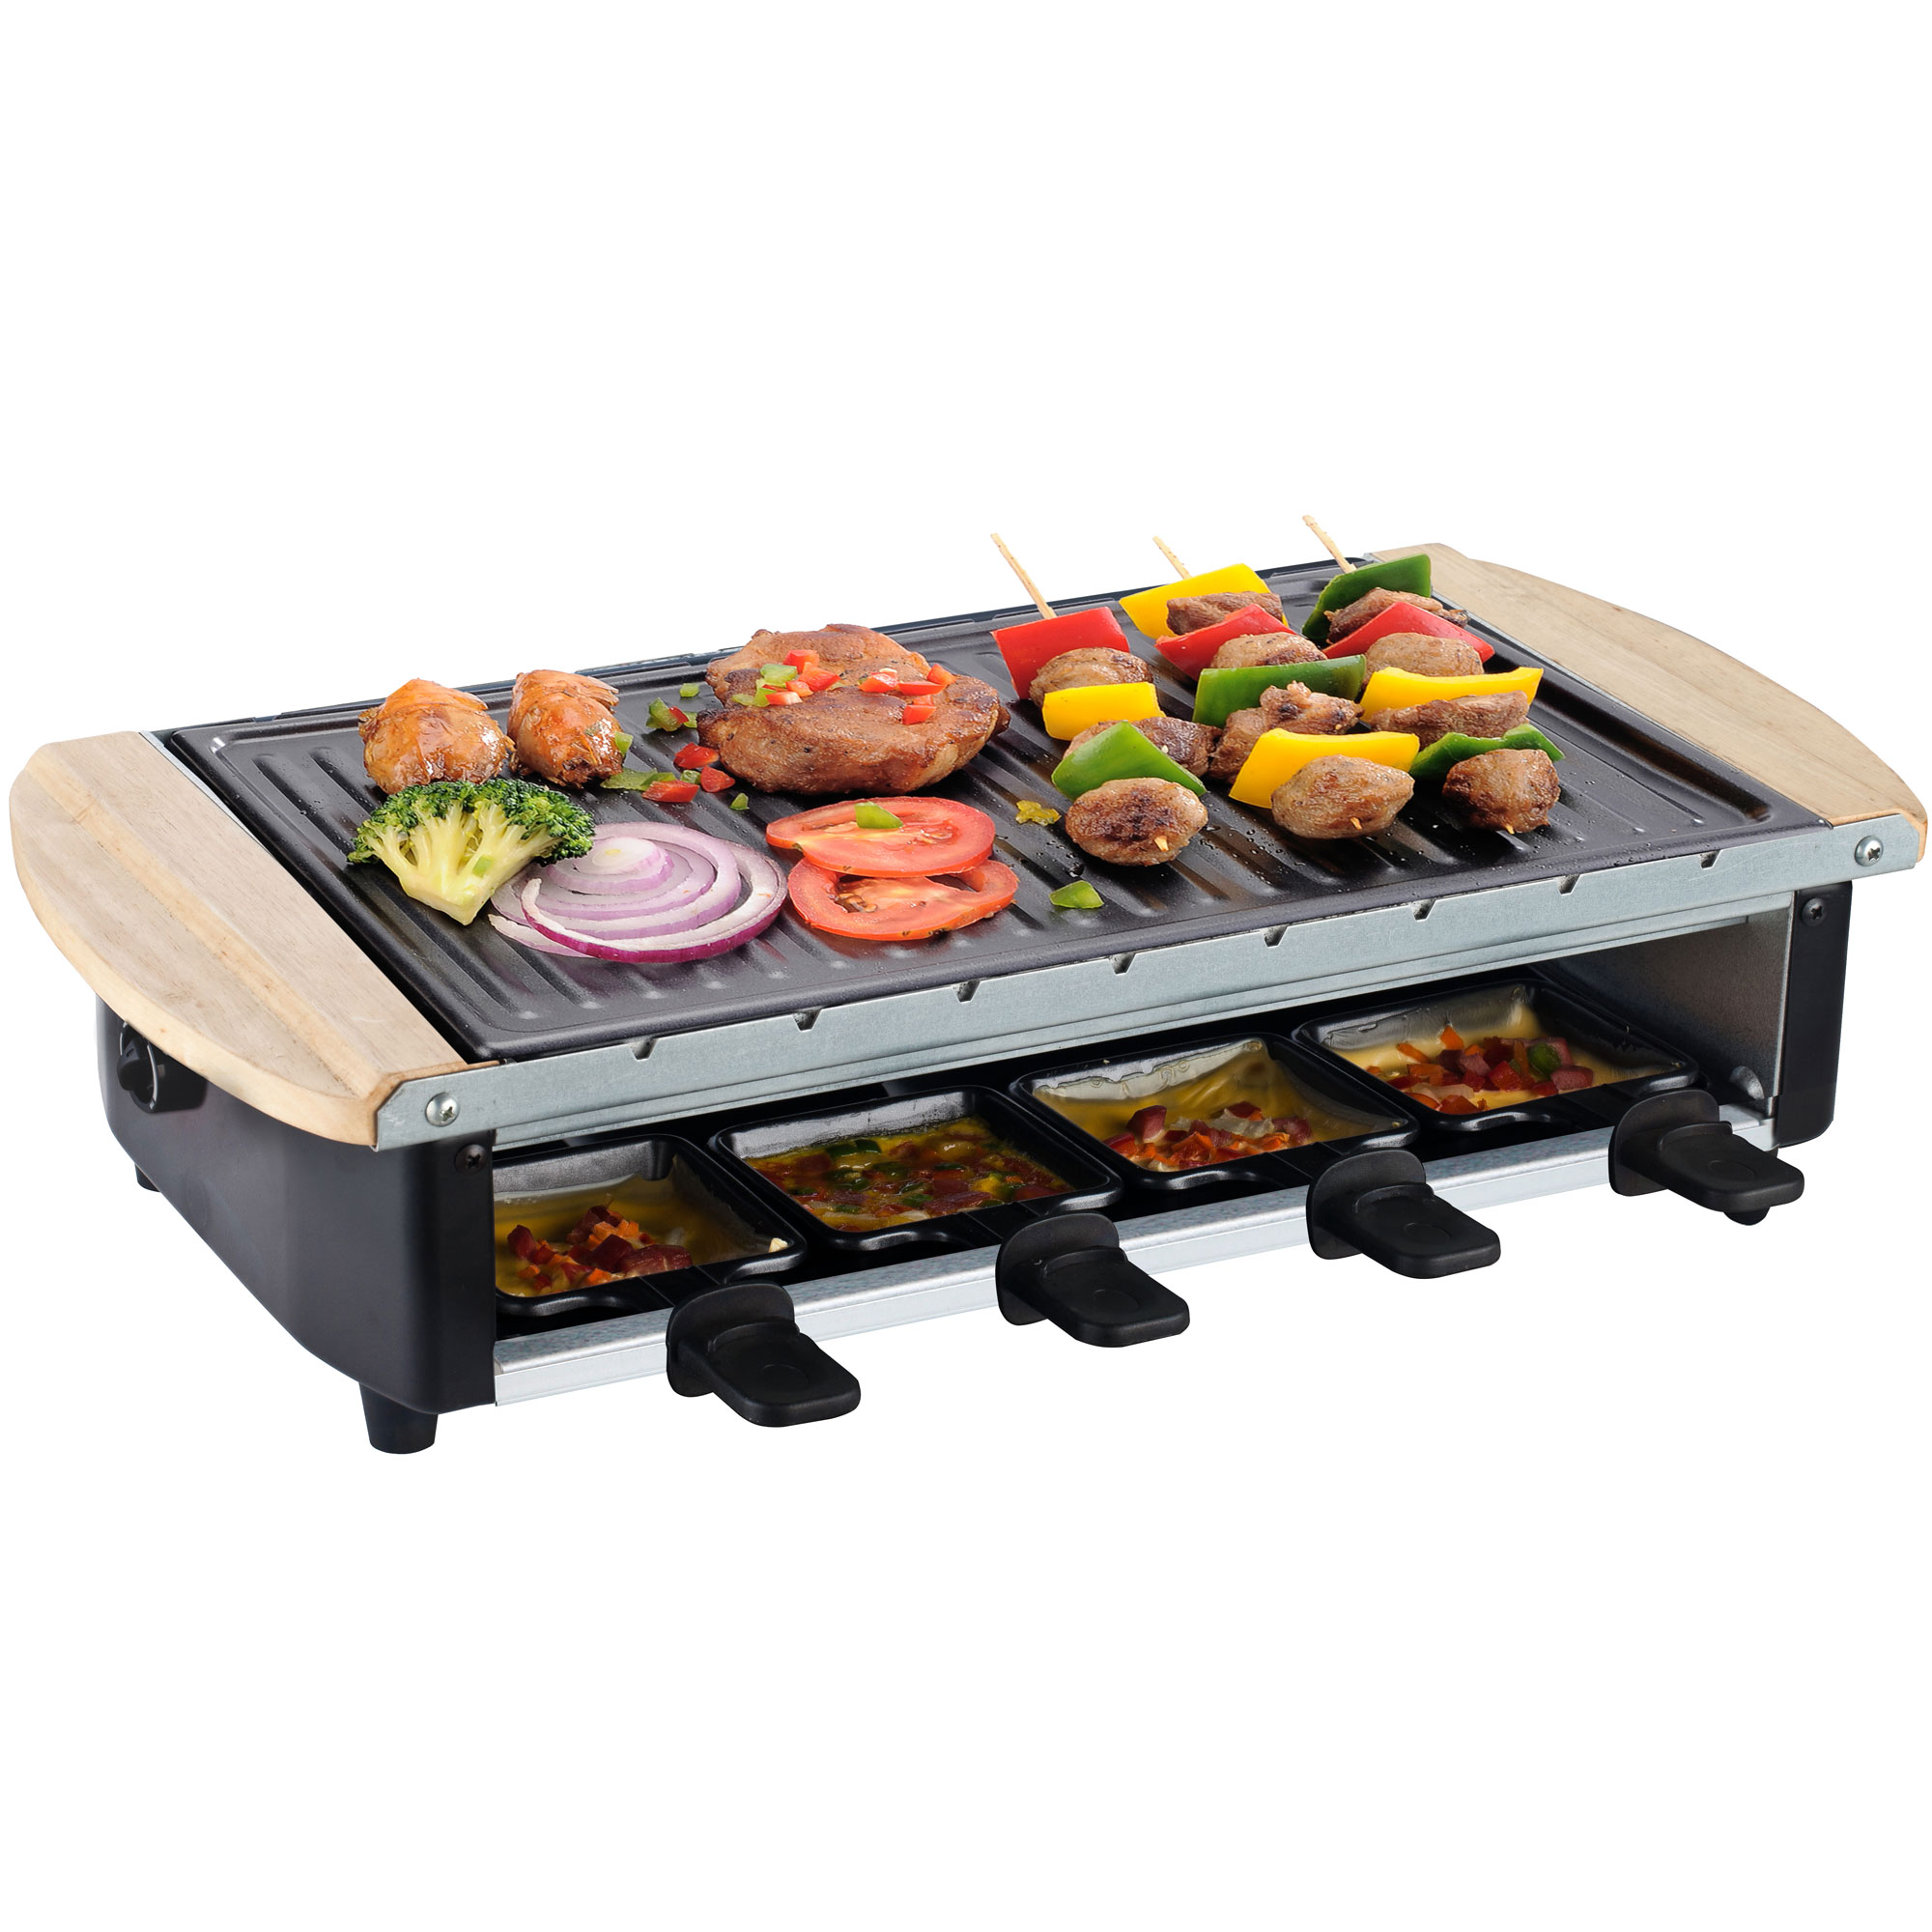 edelstahl raclette uri f r 8 personen hei er stein grill mit 3 platten syntrox ebay. Black Bedroom Furniture Sets. Home Design Ideas